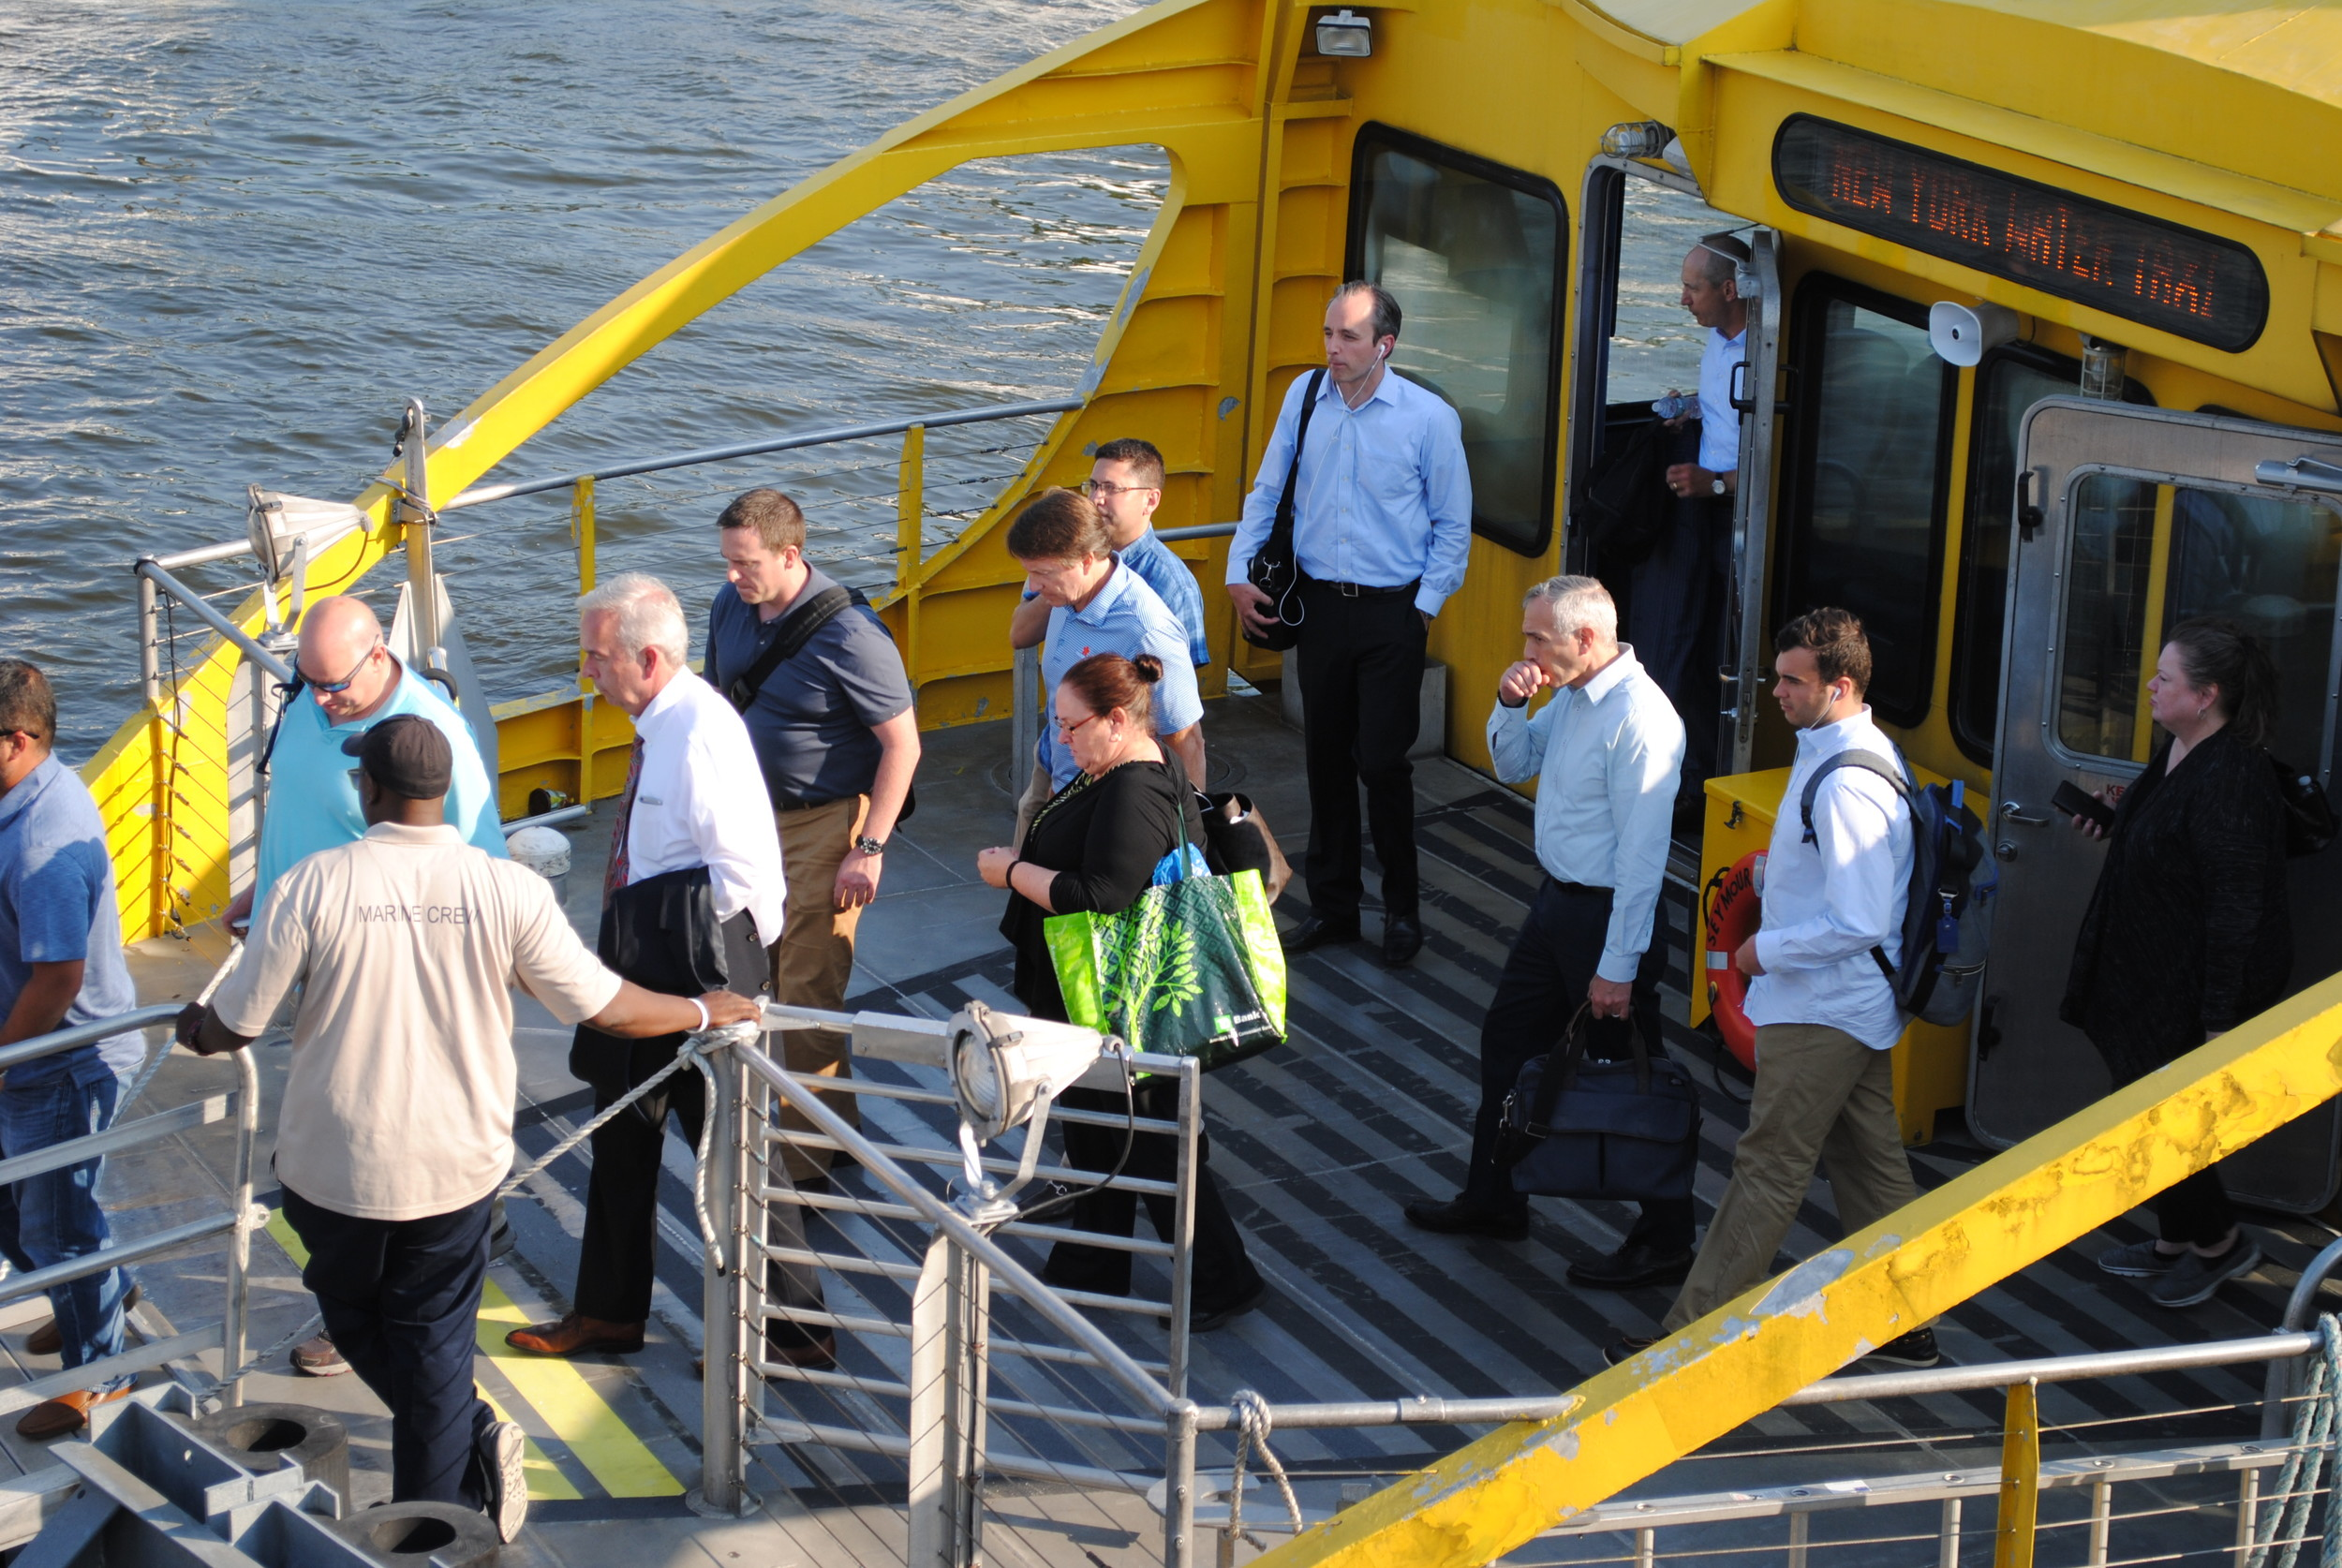 The first return ferry dropped its passengers off in Glen Cove at about 6 p.m.